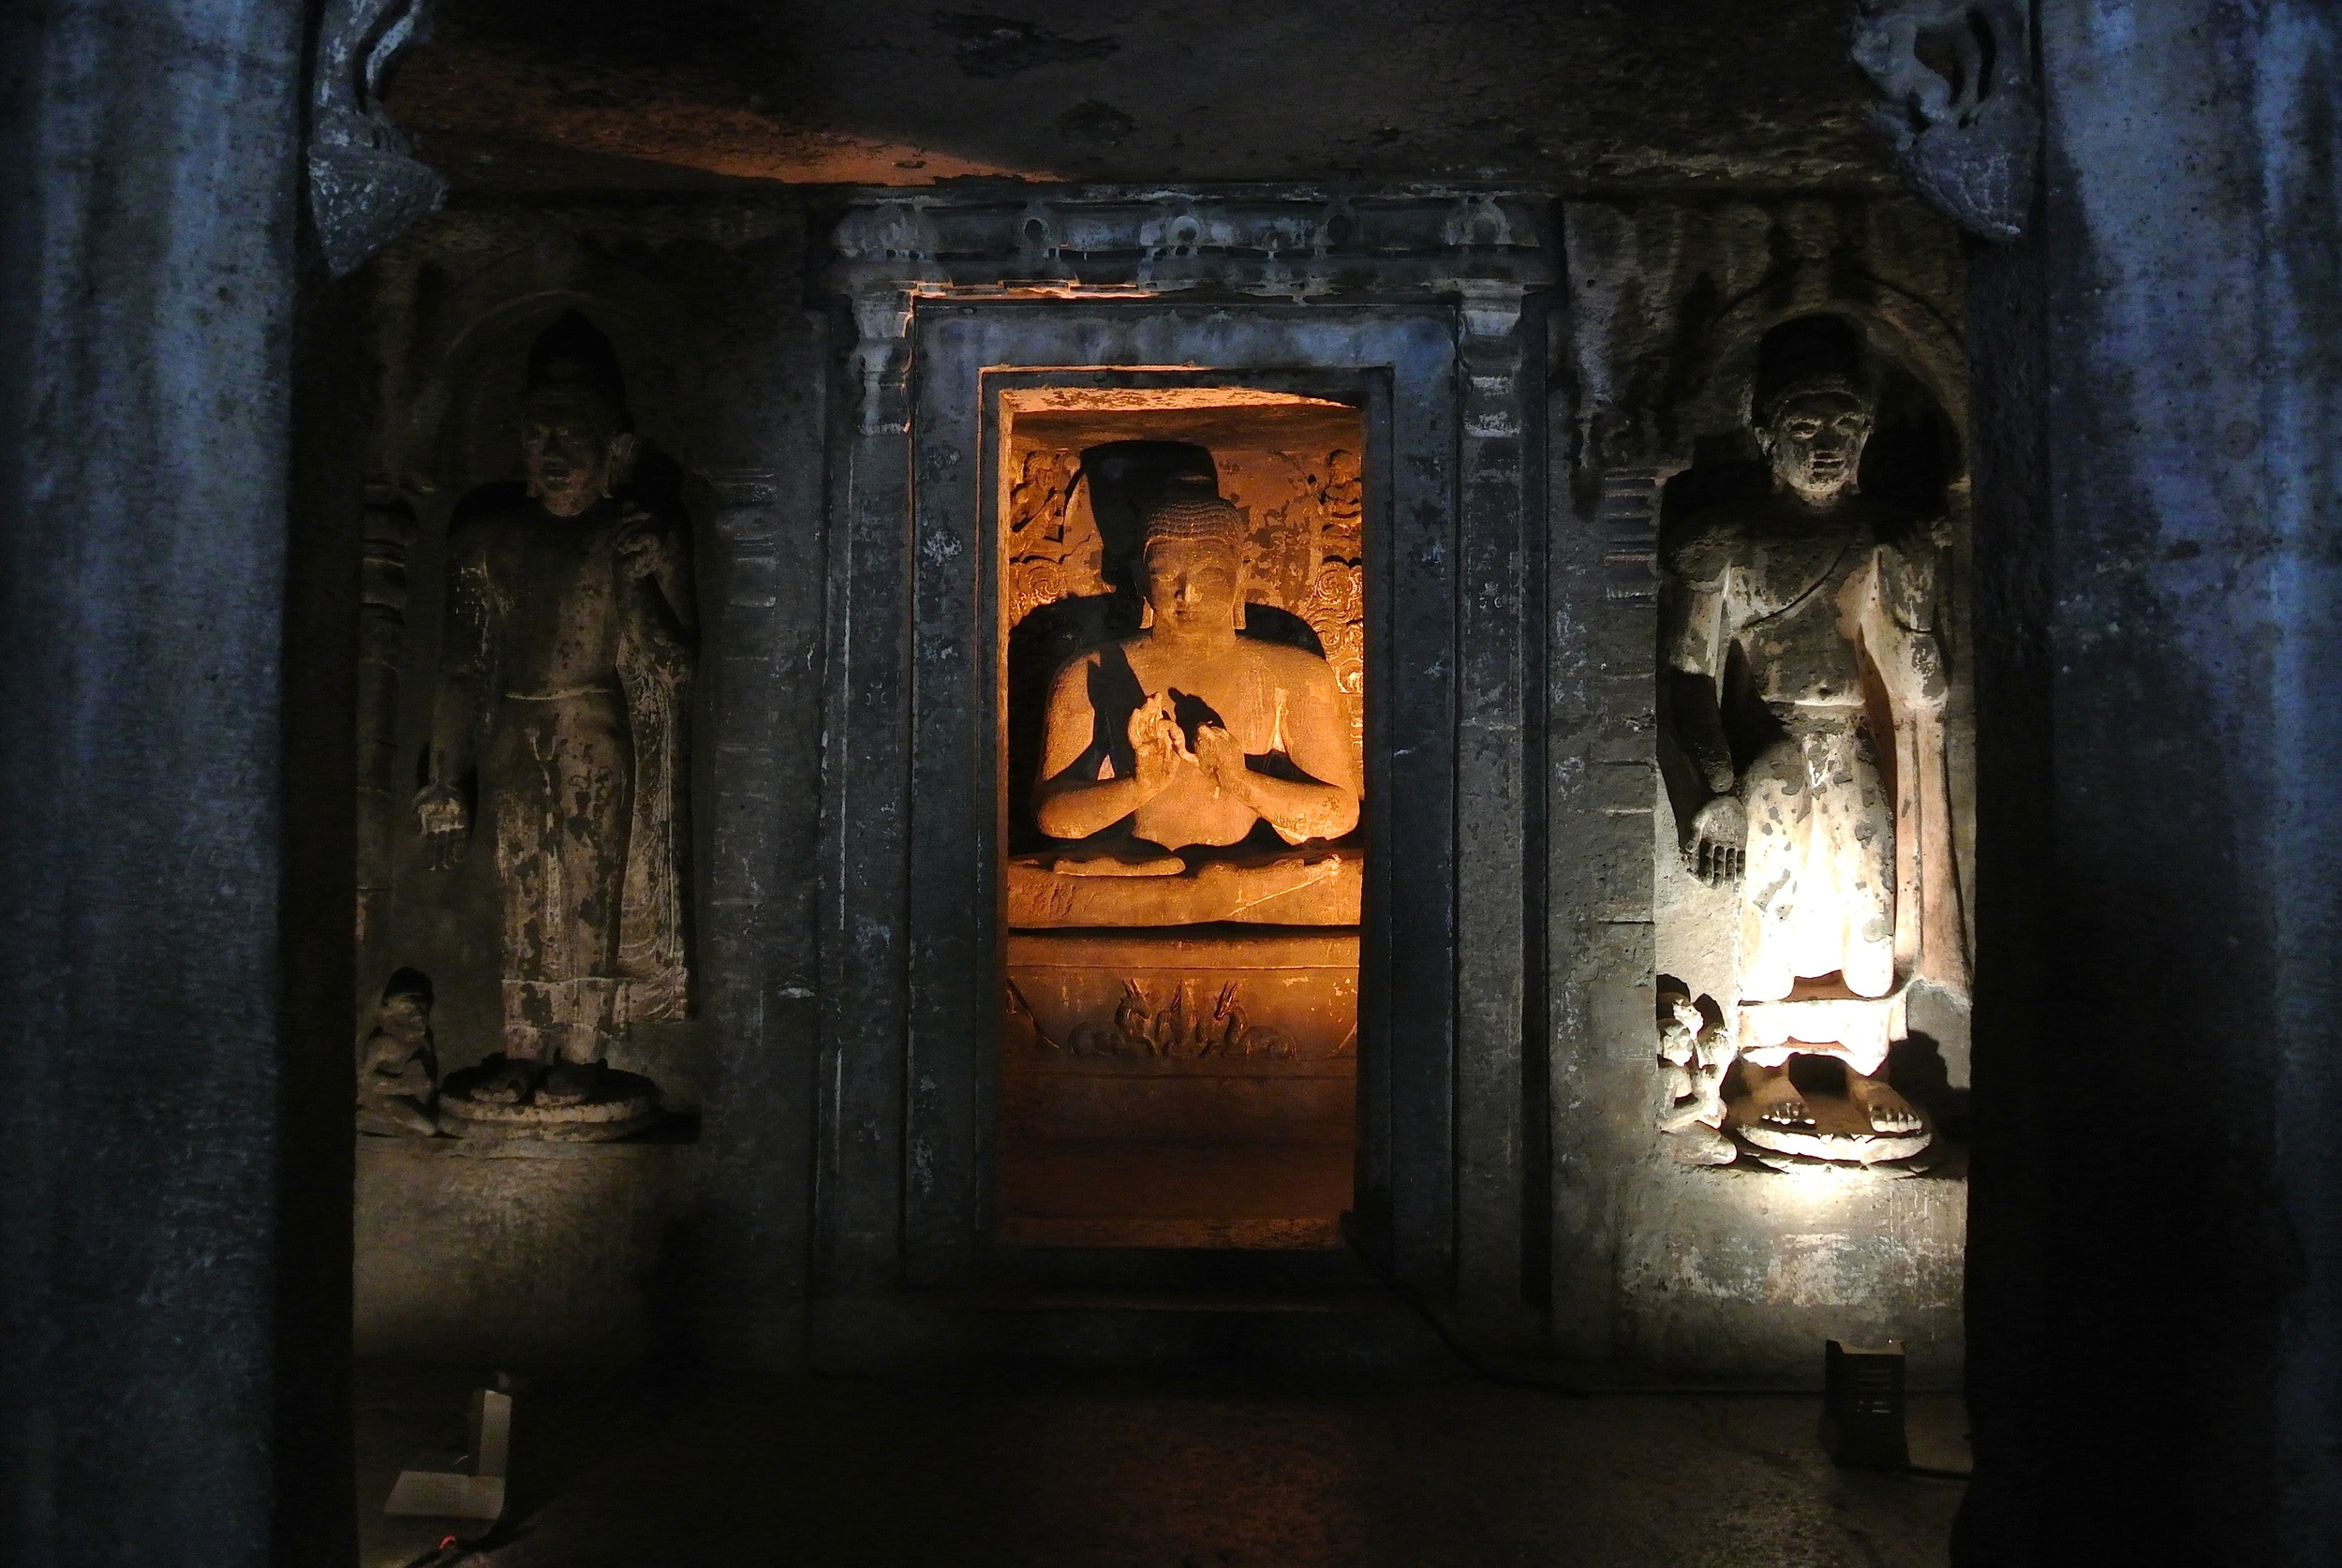 Cave 1:A statue of the Buddha flanked by Avalokitesvara and Vajrapani, the embodiments of compassion and spiritual energy